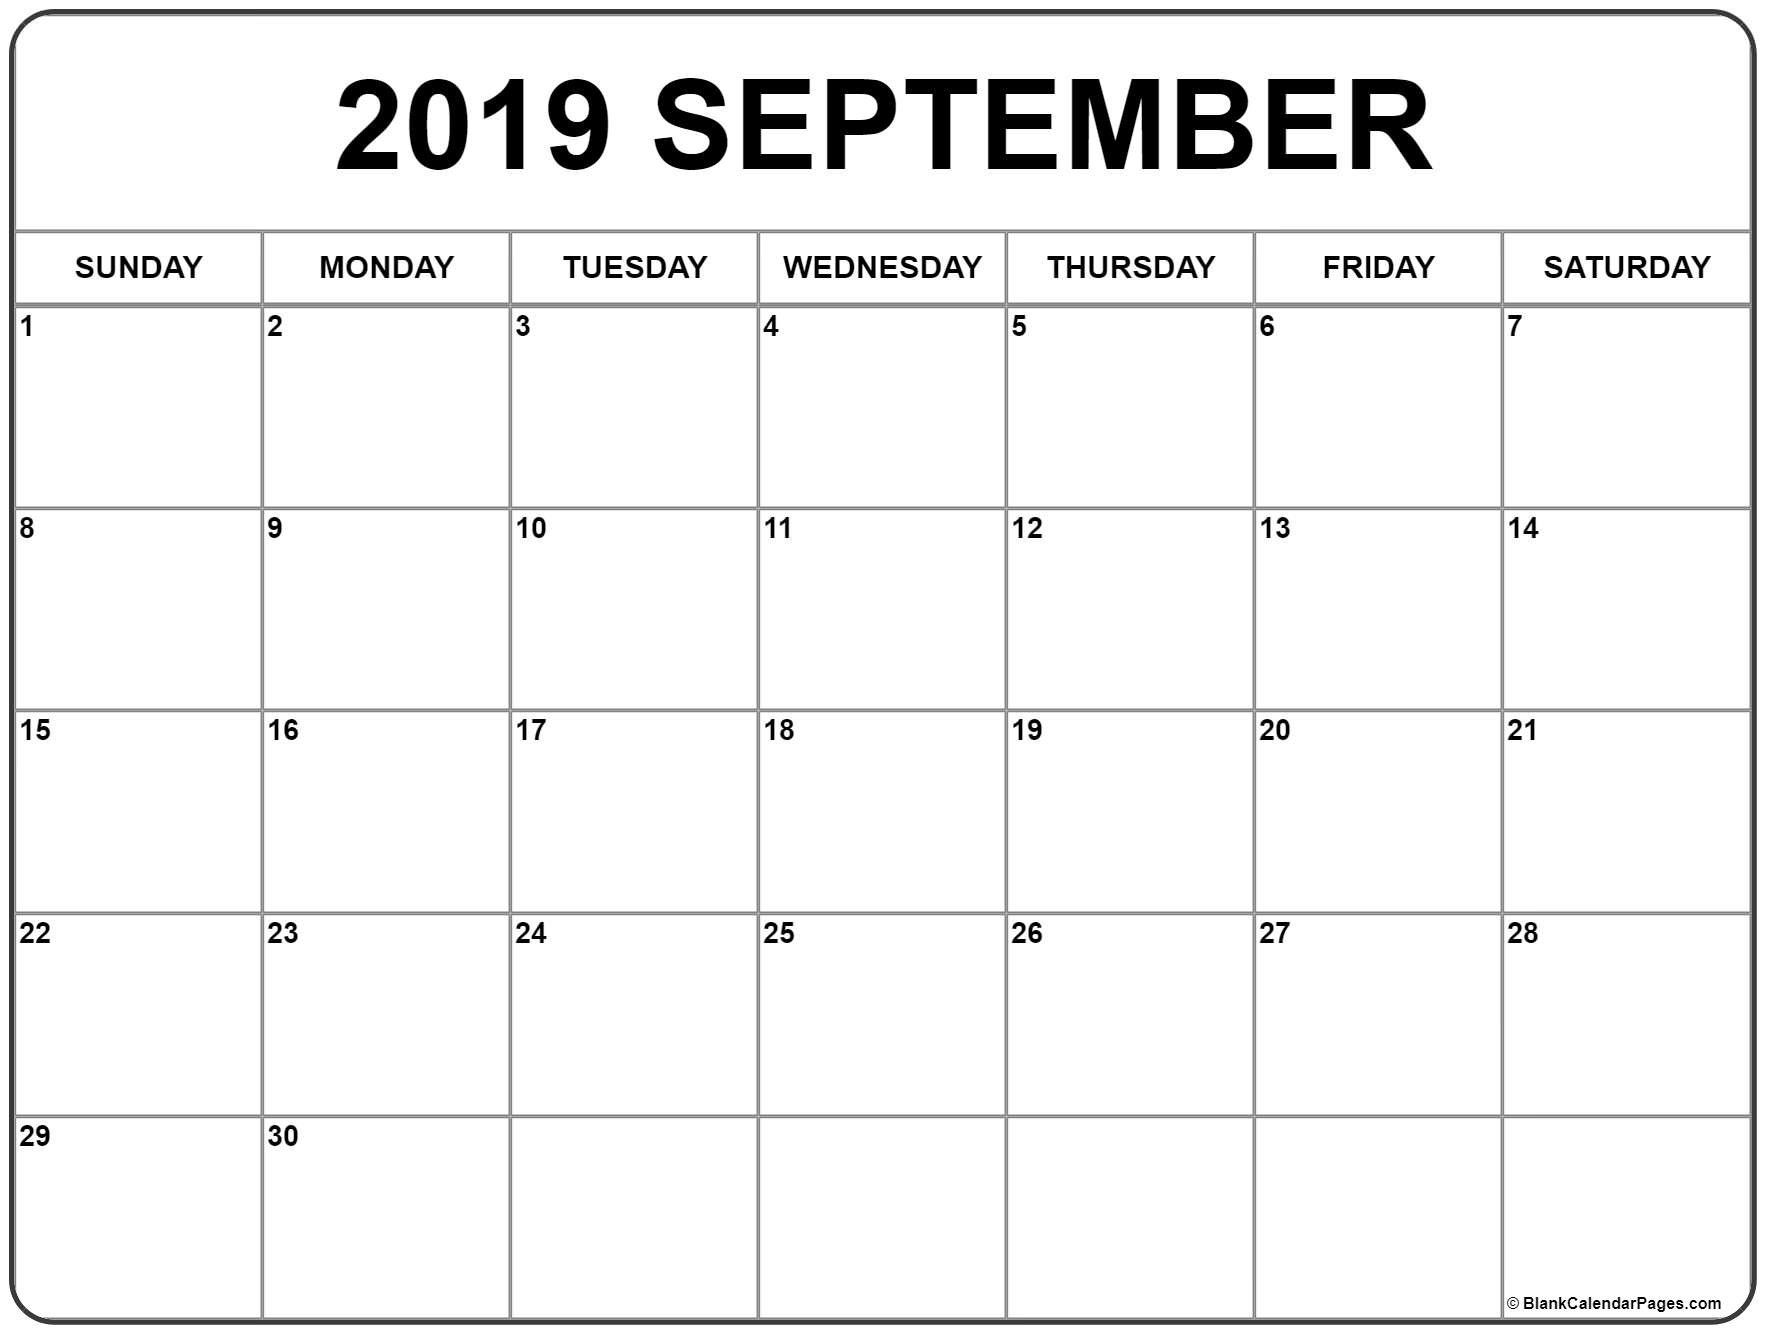 September 2019 Calendar | 56+ Templates Of 2019 Printable Calendars Calendar 2019 September